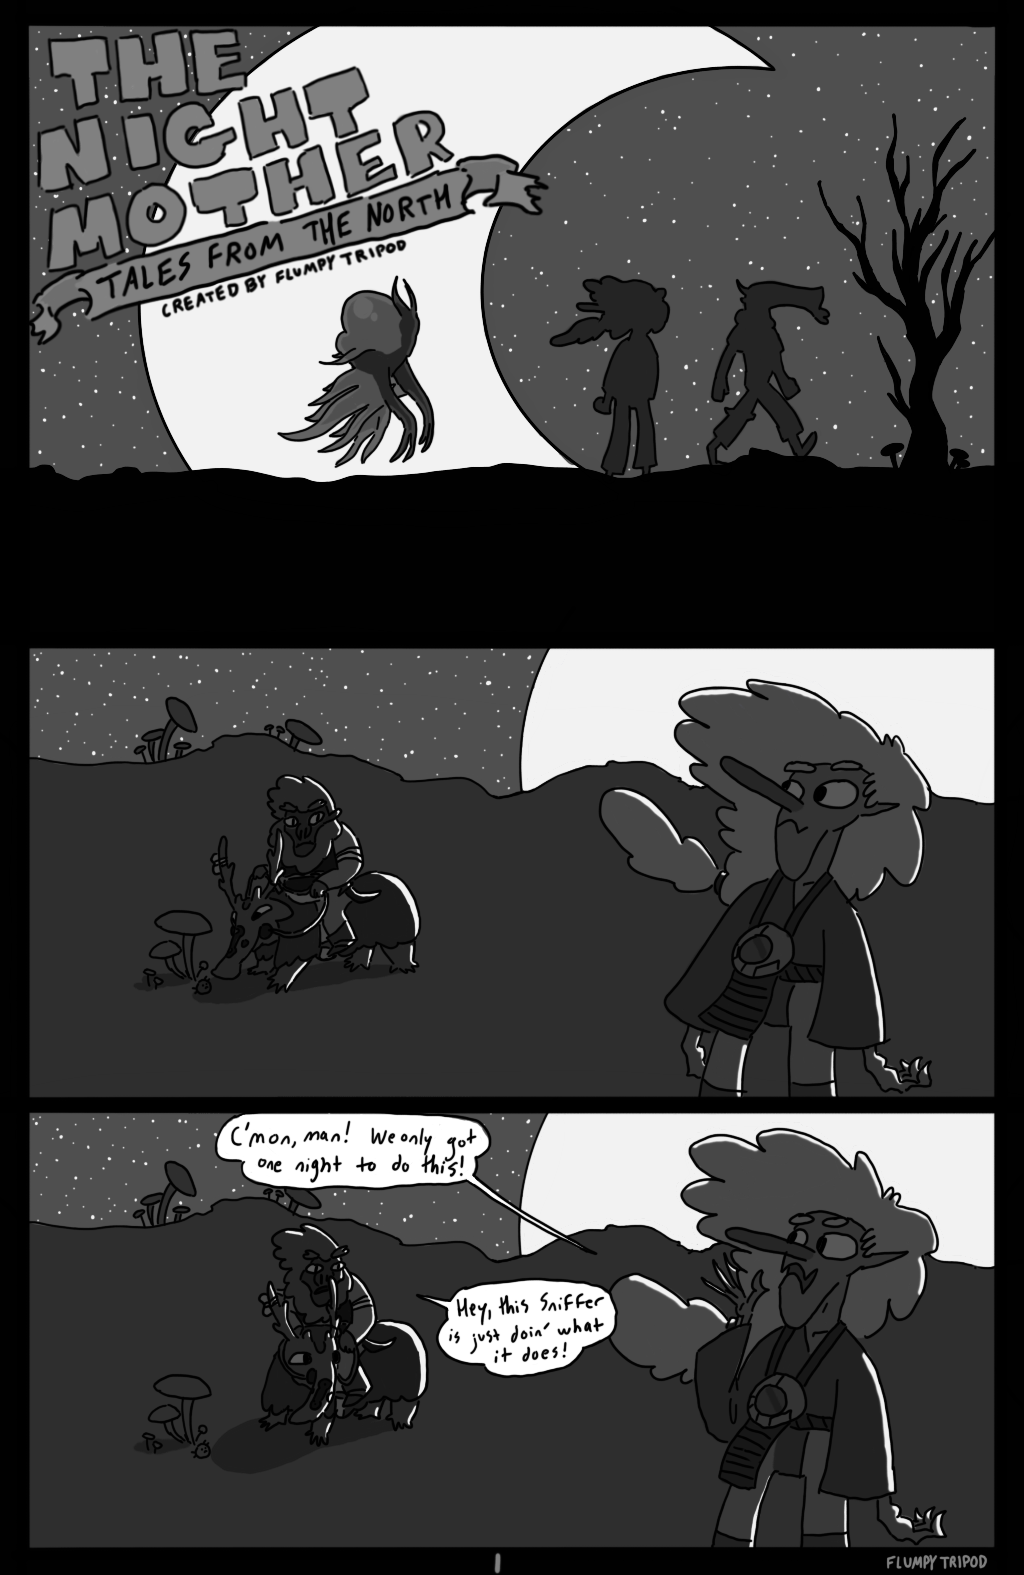 Tales from the North 1 - The Night Mother (Page 1)